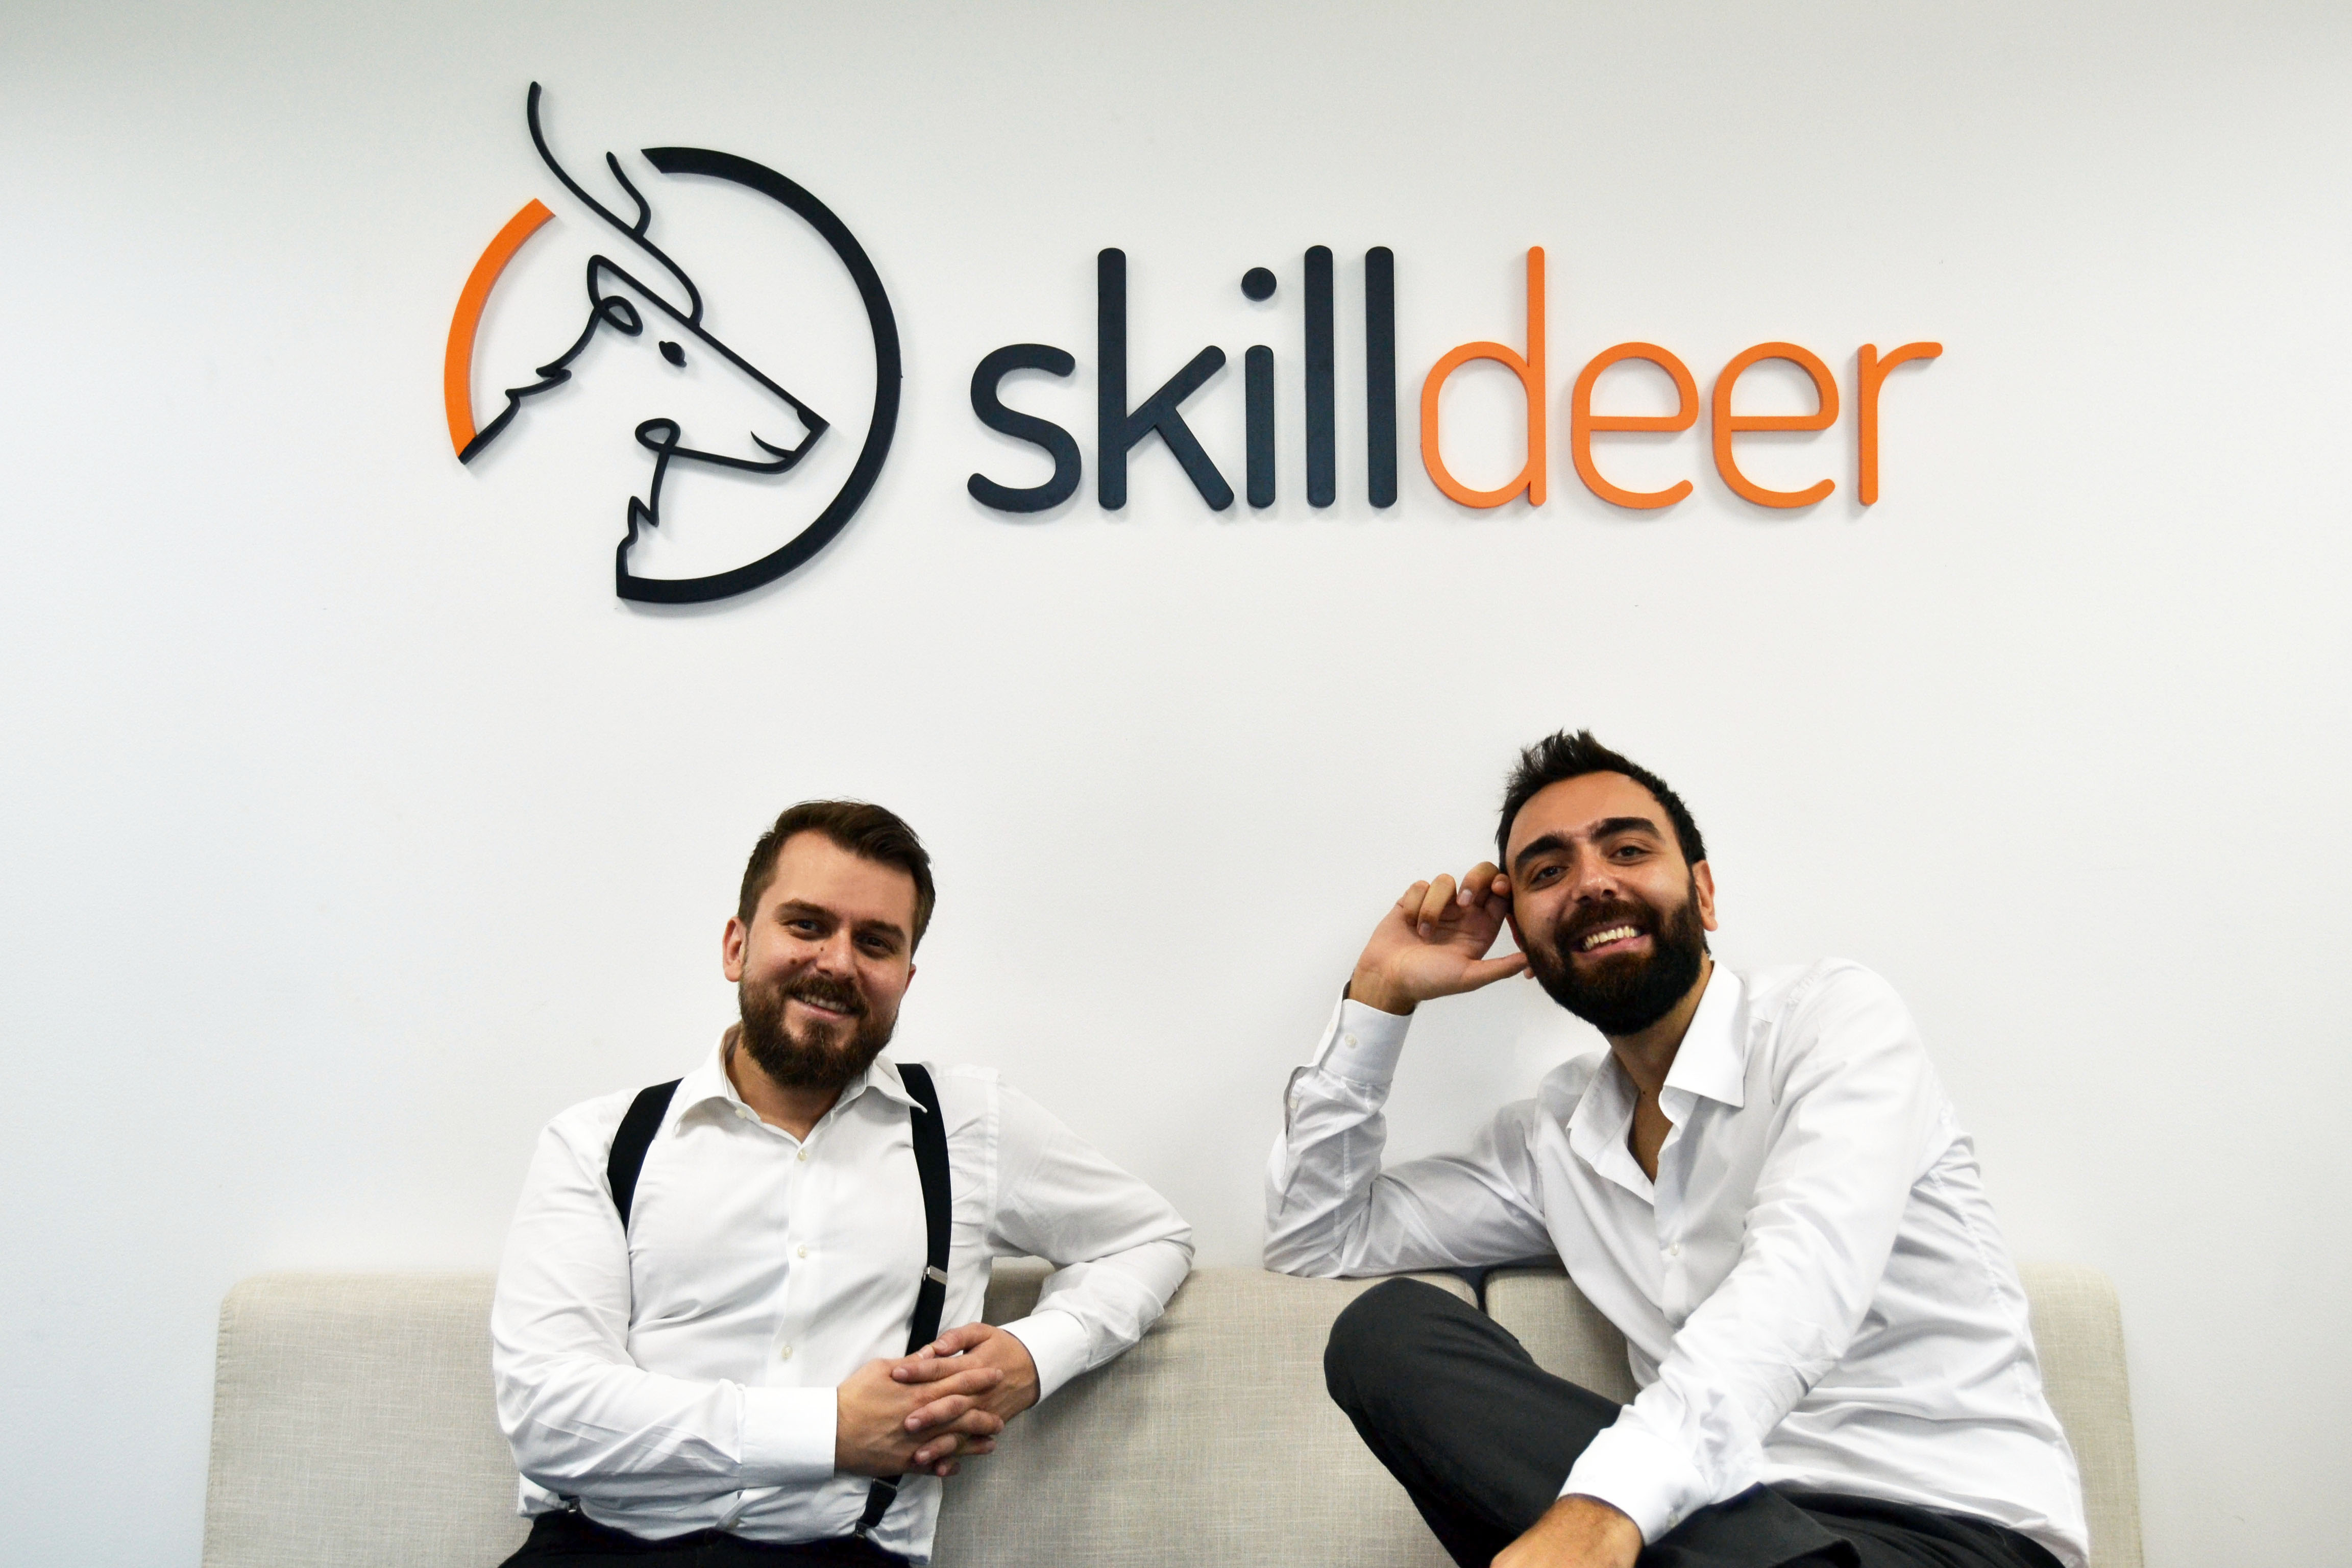 Regional Expansion High on the Agenda for Online Marketplace skilldeer.com